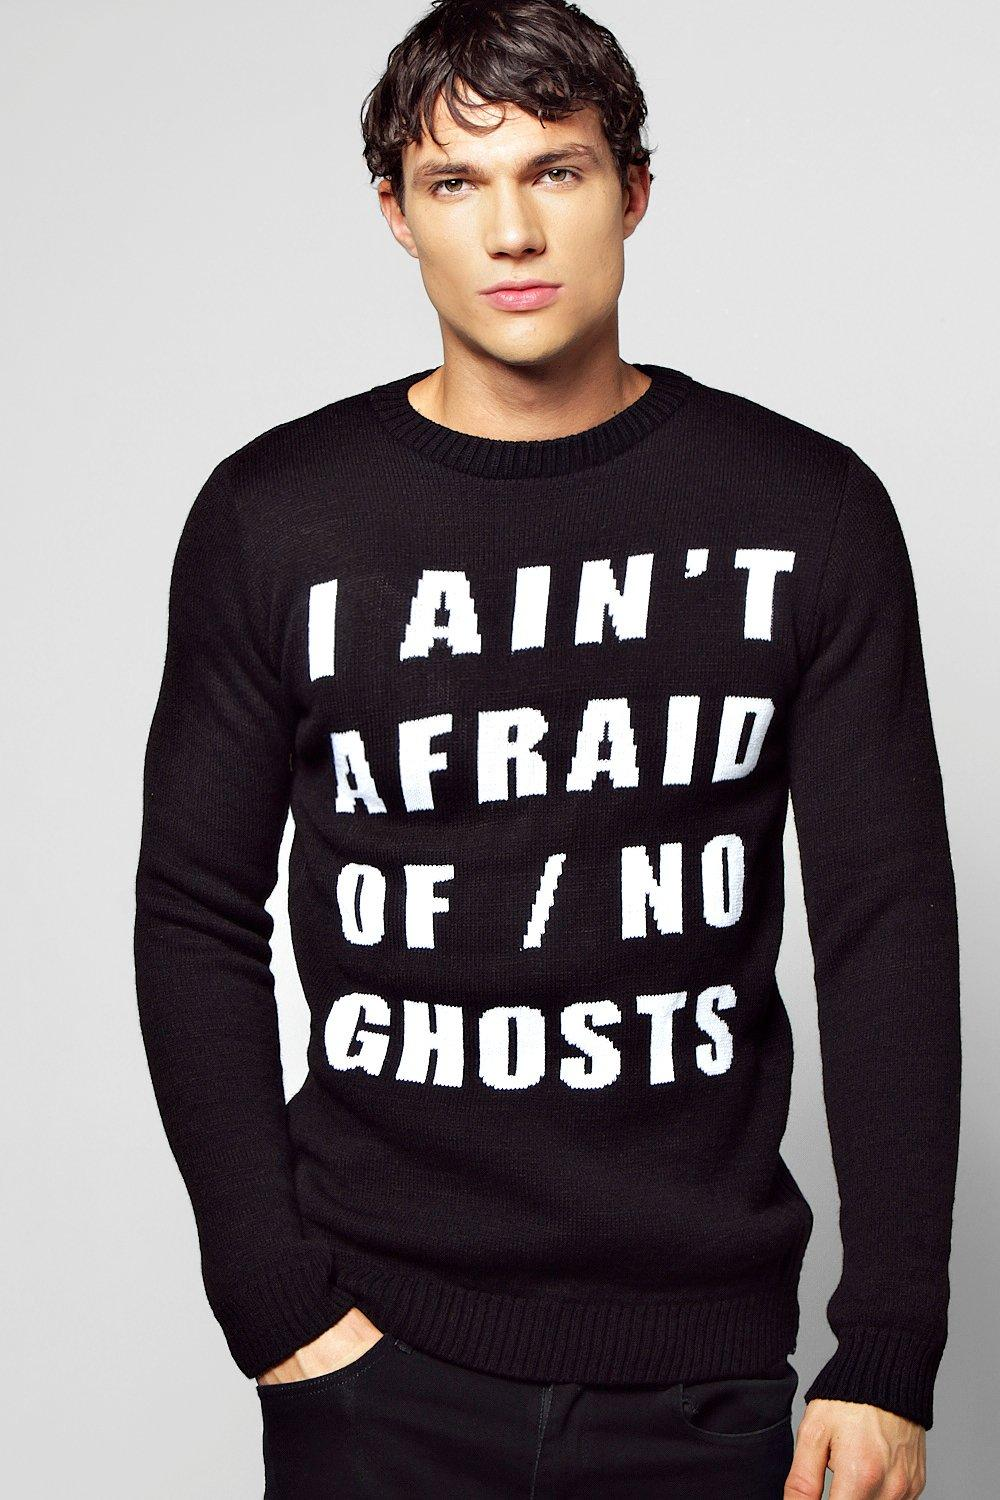 Halloween 'Ghosts' Slogan Sweater